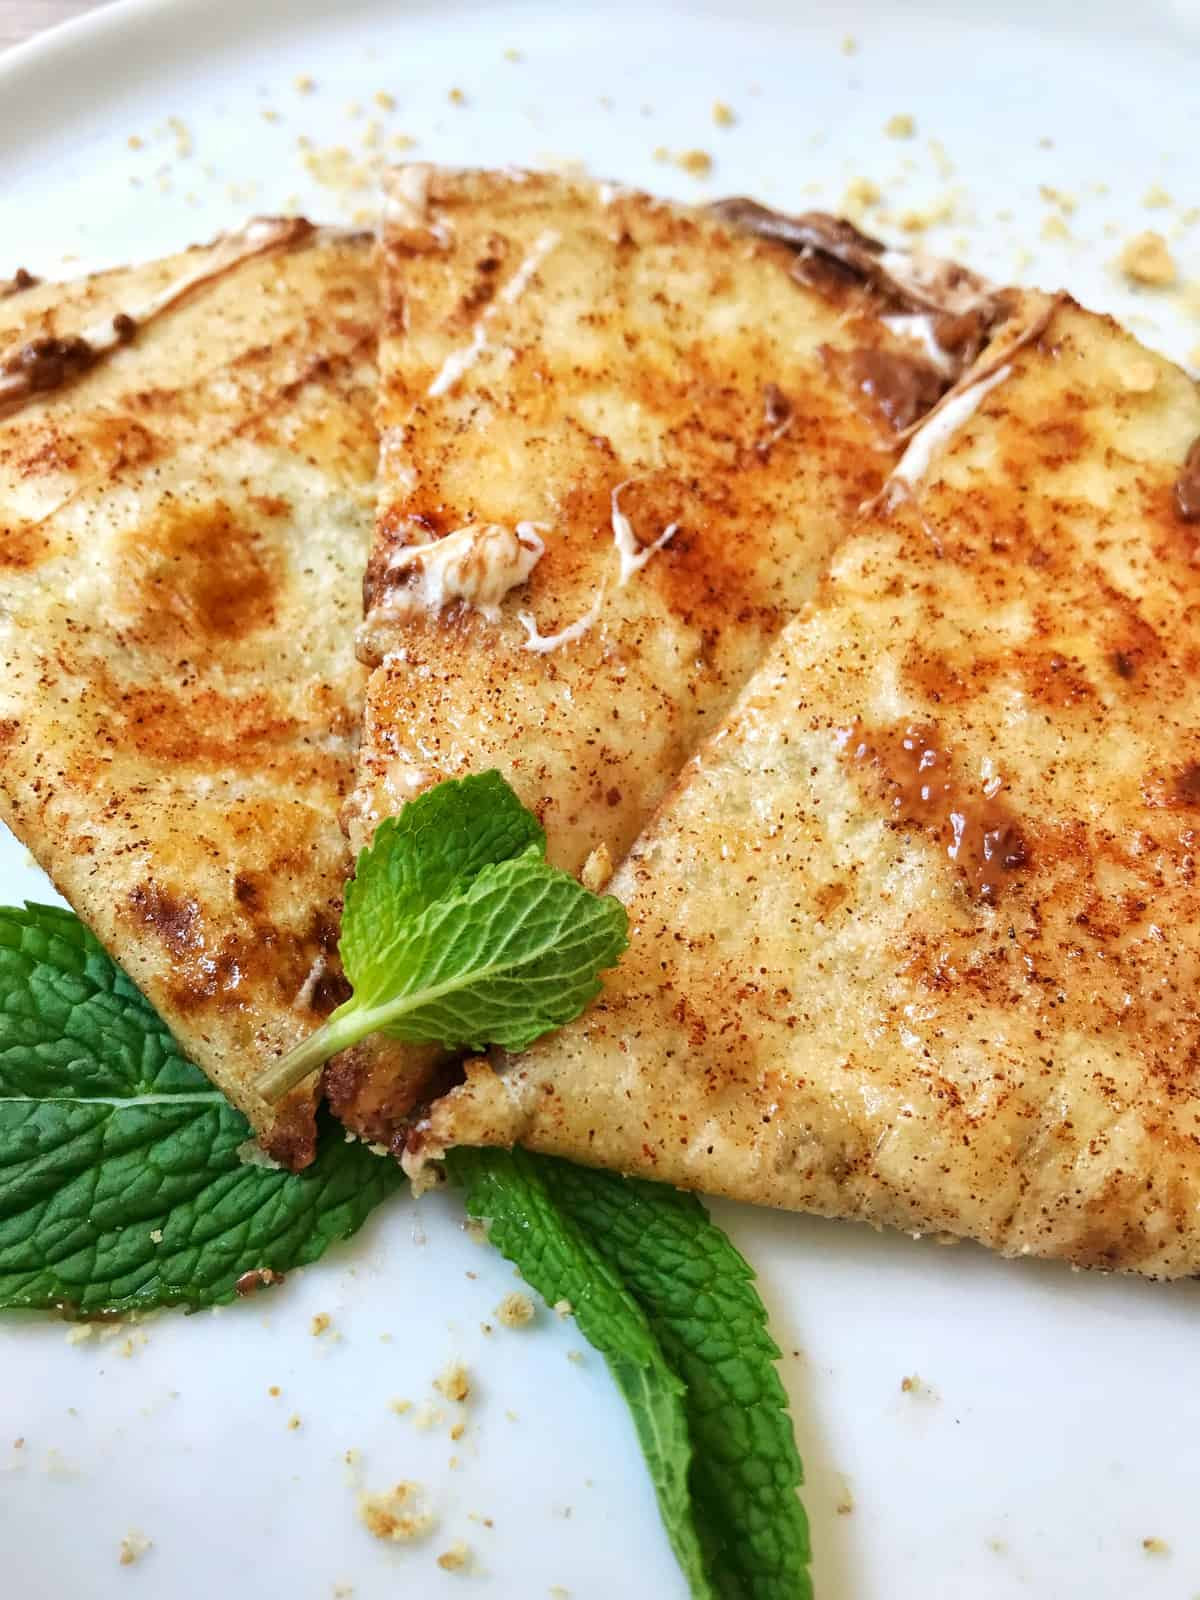 S'more Quesadilla